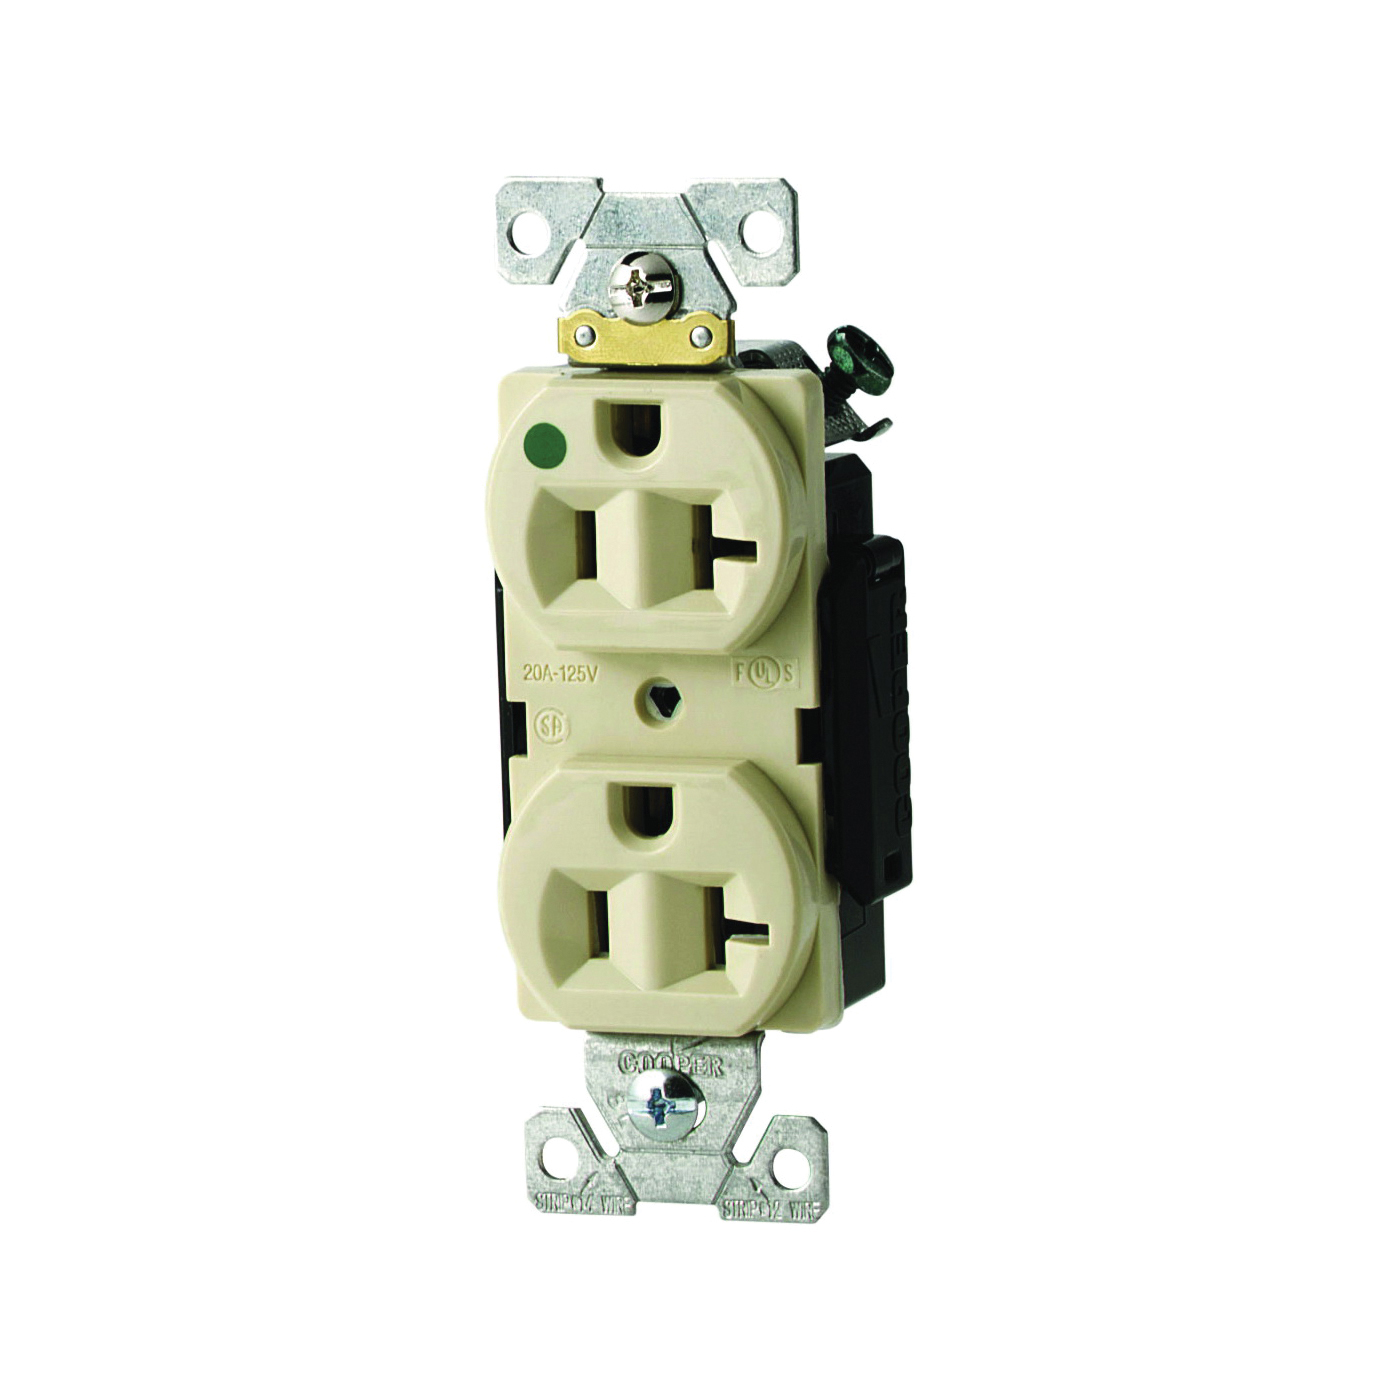 Picture of Eaton Wiring Devices AH8300V Duplex Receptacle, 2-Pole, 20 A, 125 V, Back, Side Wiring, NEMA: 5-20R, Ivory